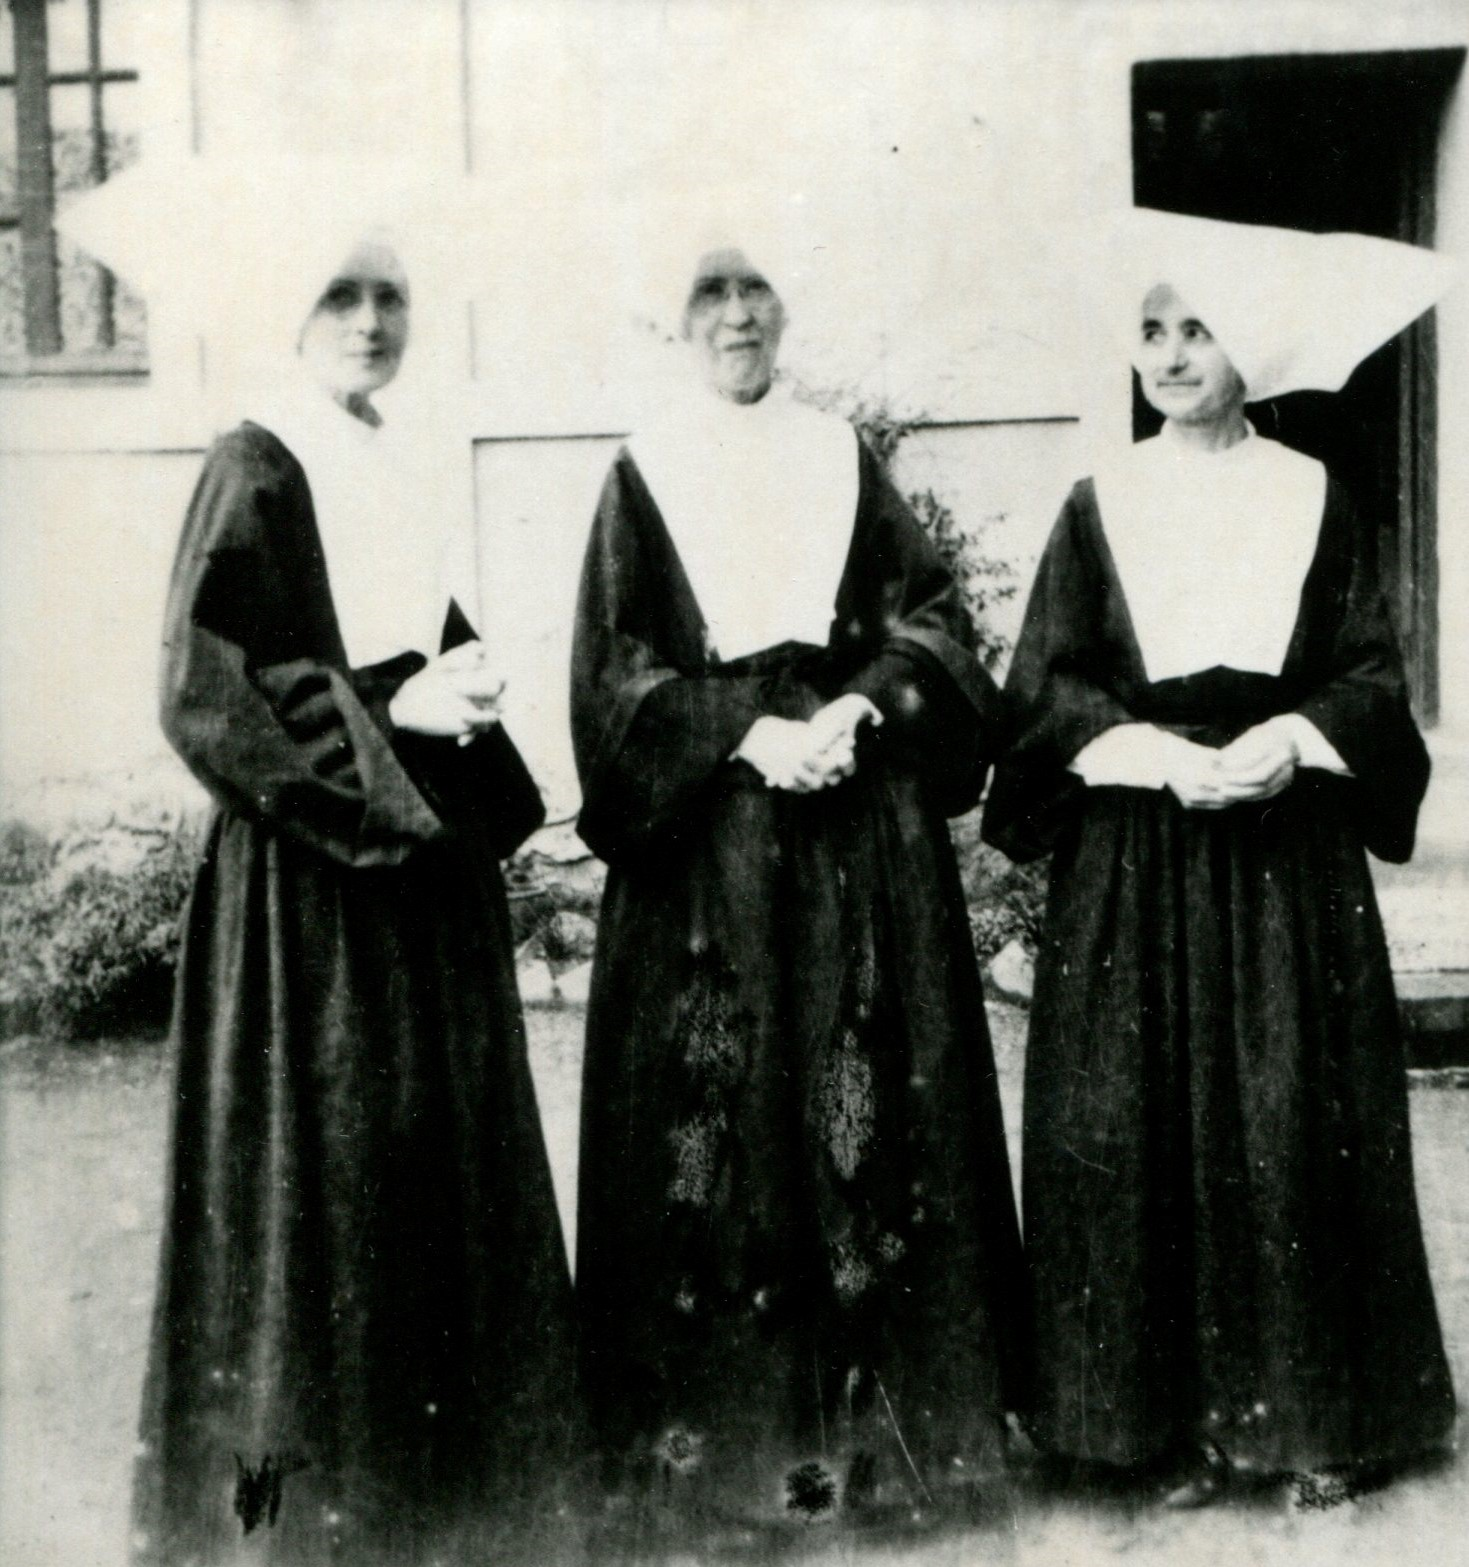 Sisters Clara Groell, Eugenia Biggs, and Catherine O'Neill outside barracks, Aug. 1945. These three sisters were missioned in China and ended up serving as U.S. Army nurses in the Pacific theater of World War II.